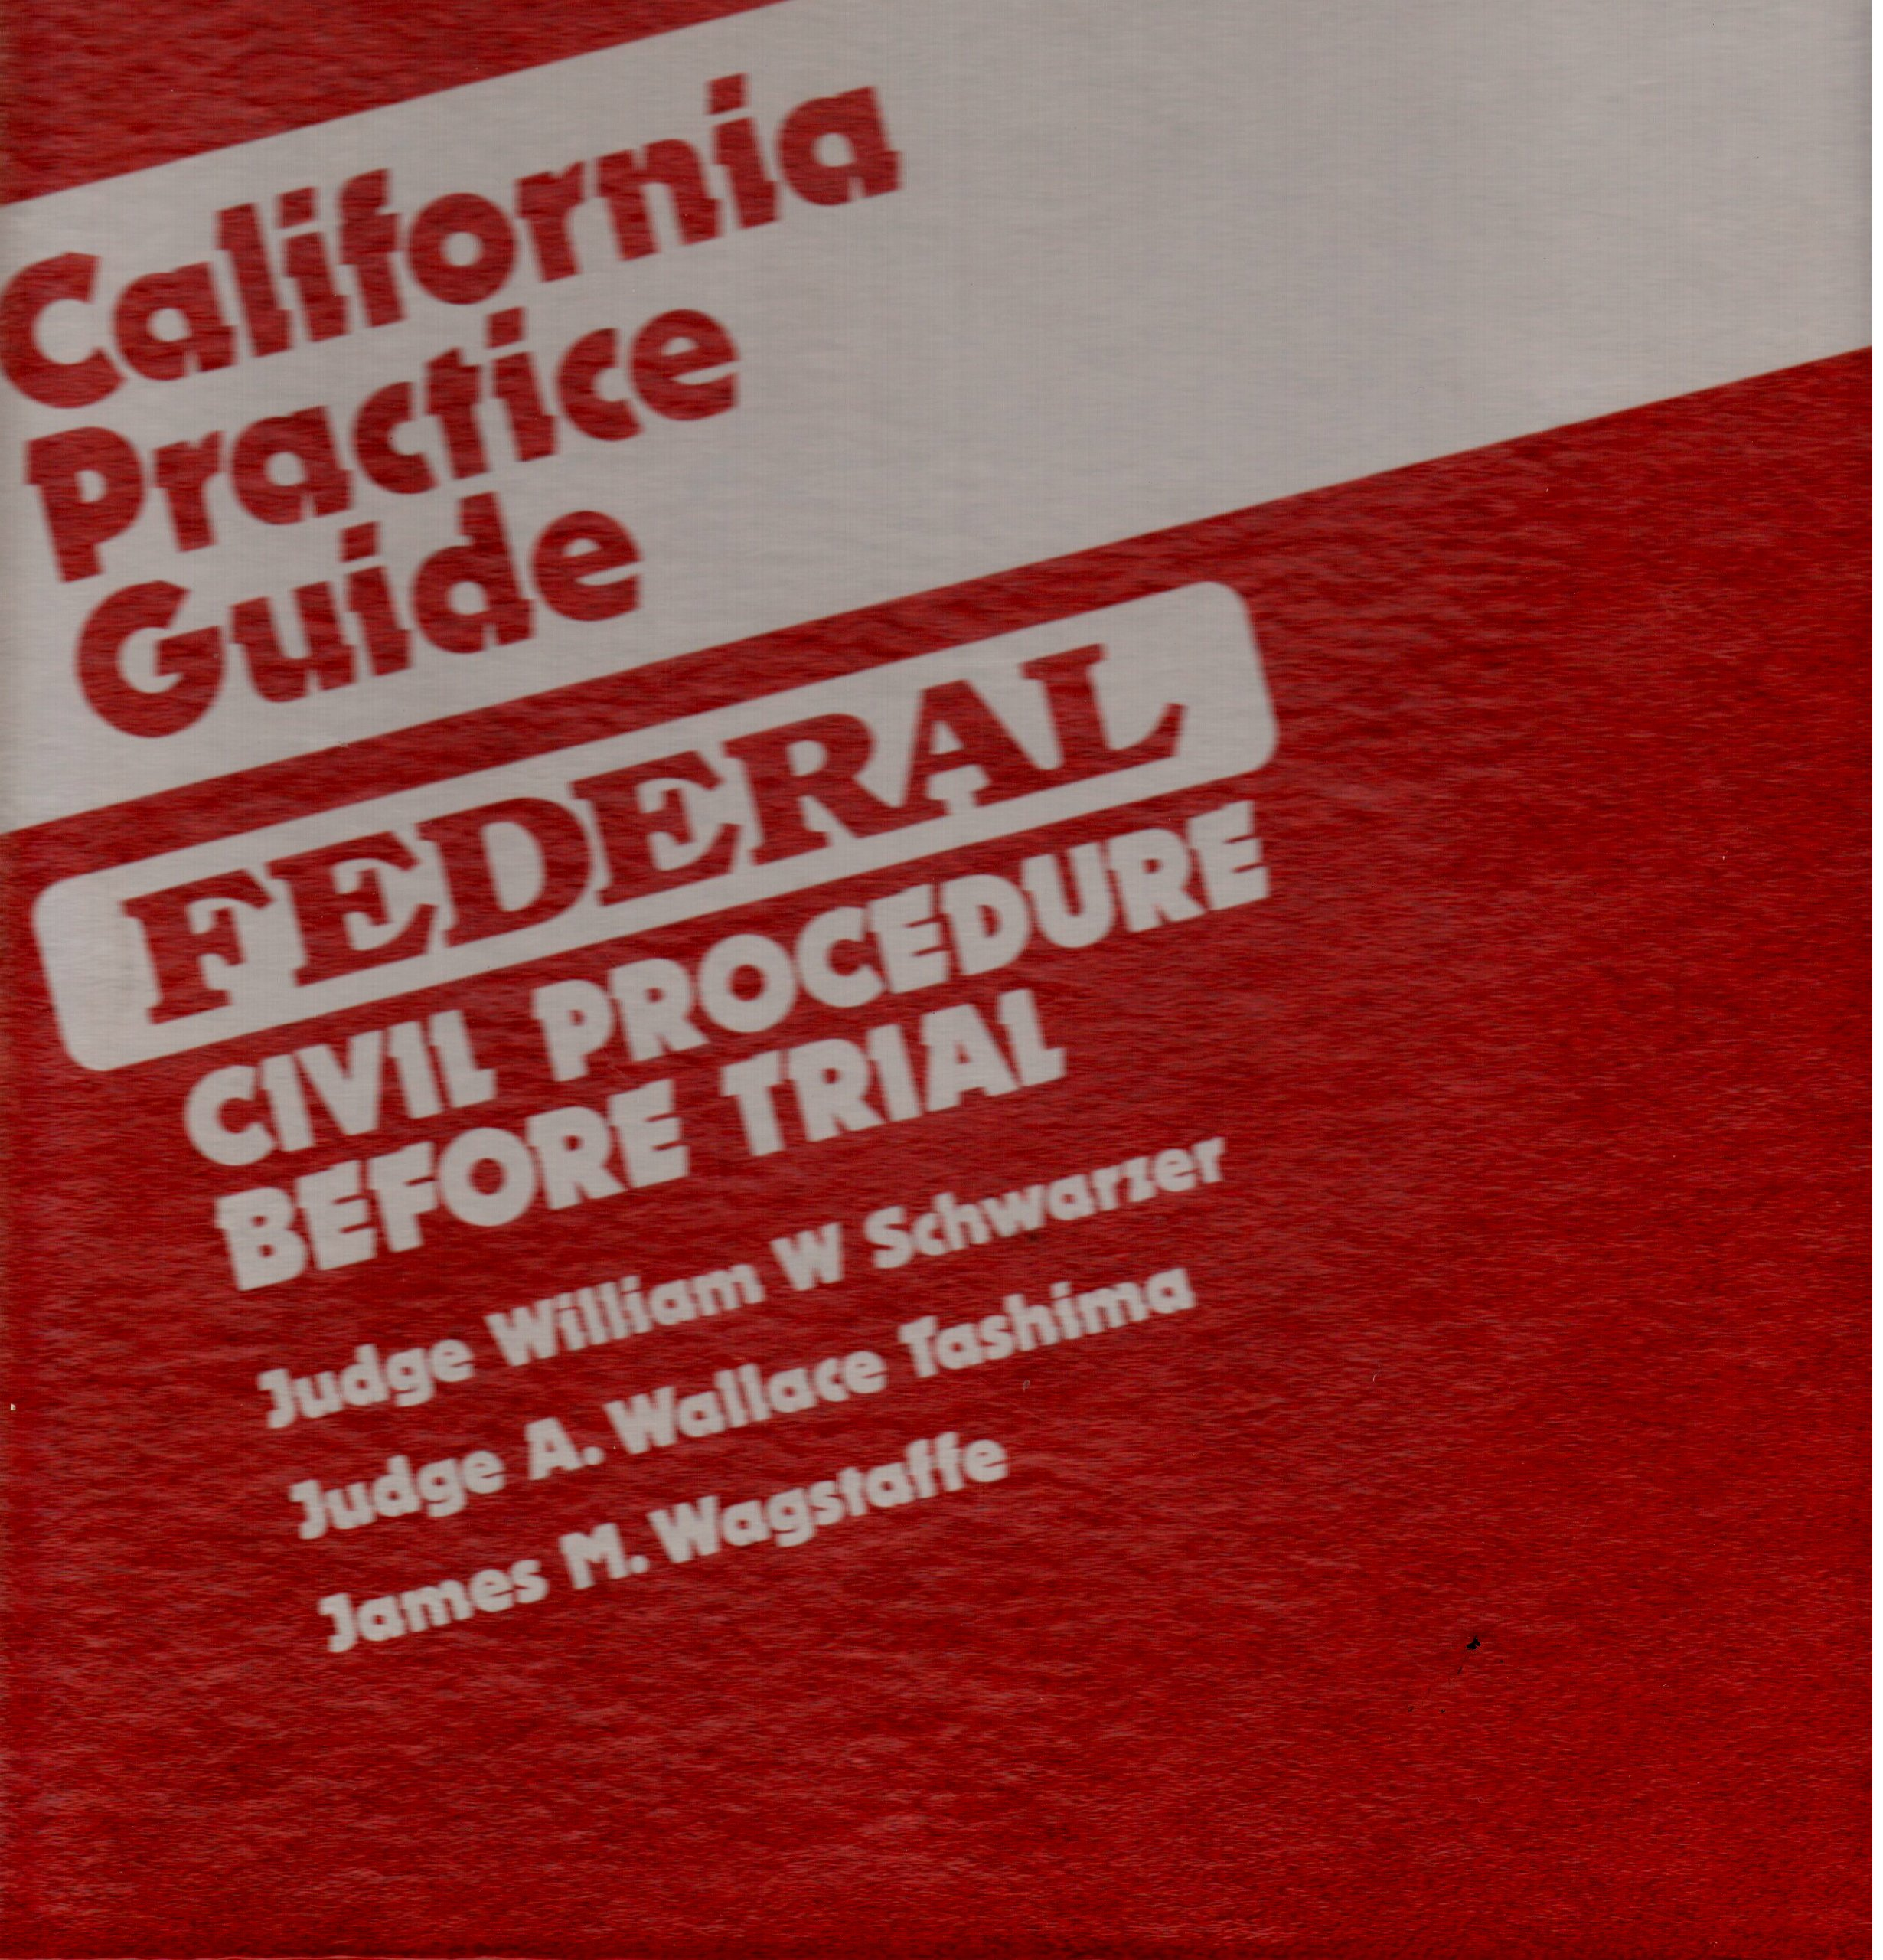 Download California Practice Guide: Federal Civil Procedure Before Trial (Chapters 12-17, Tables & Index) PDF